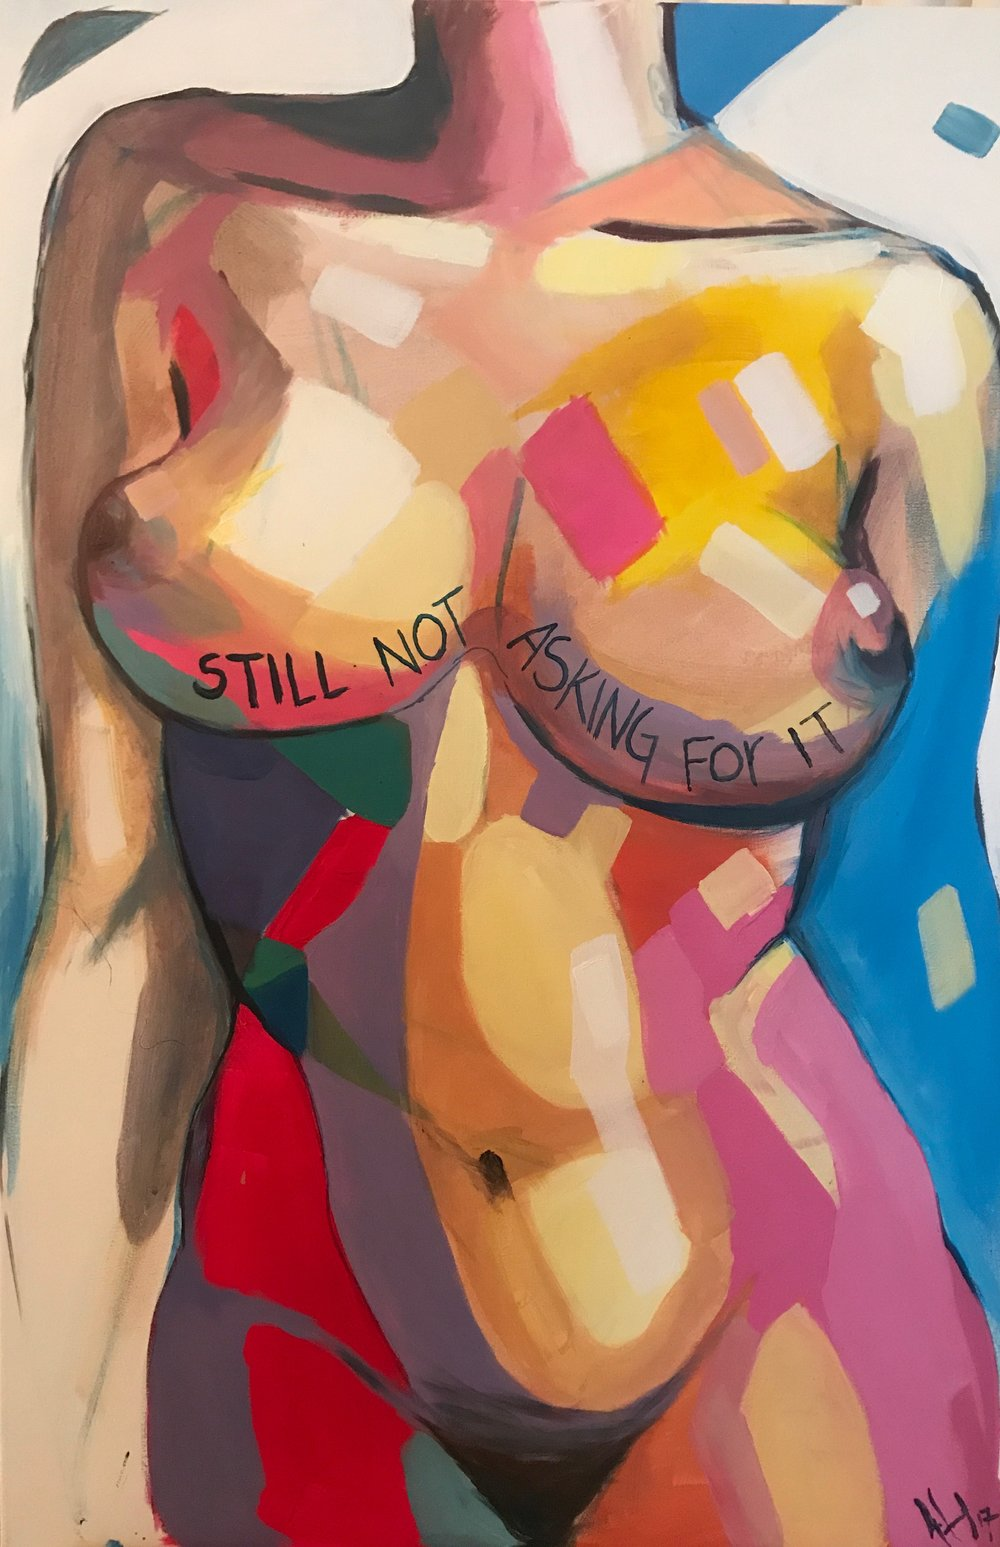 Copy of Still Not Asking for it, 2018